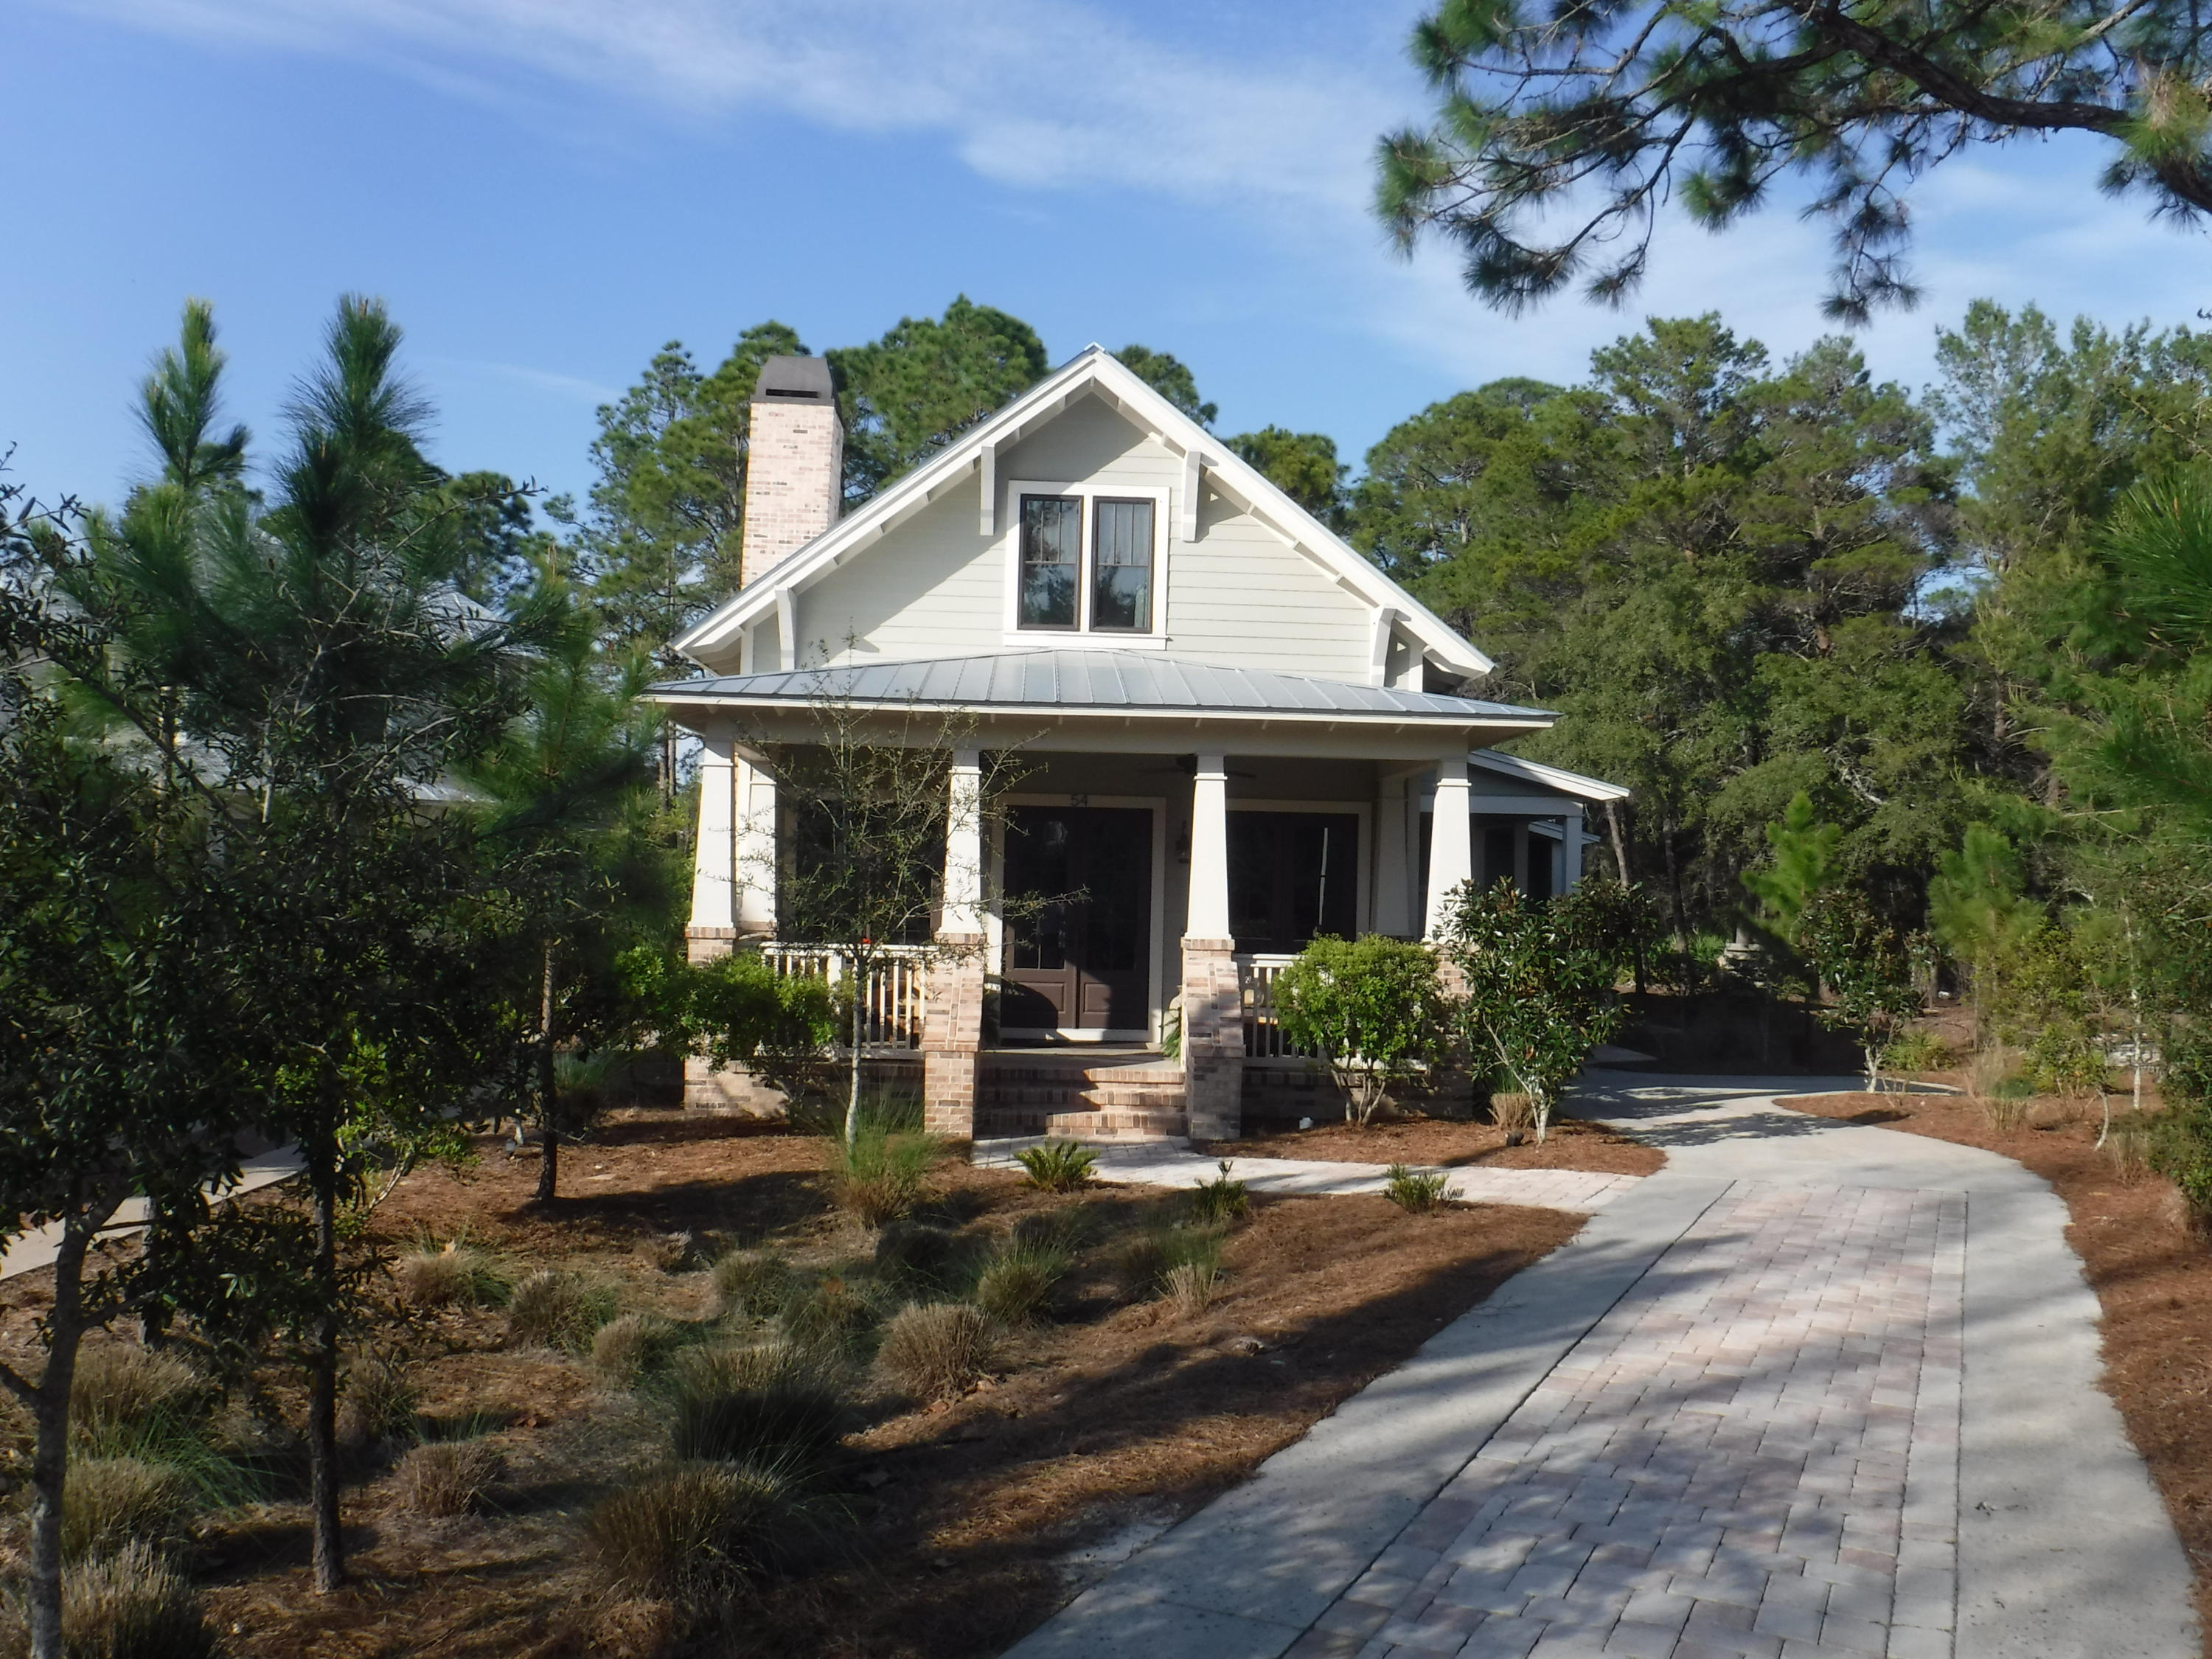 Photo of home for sale at 54 Okeechobee, Santa Rosa Beach FL